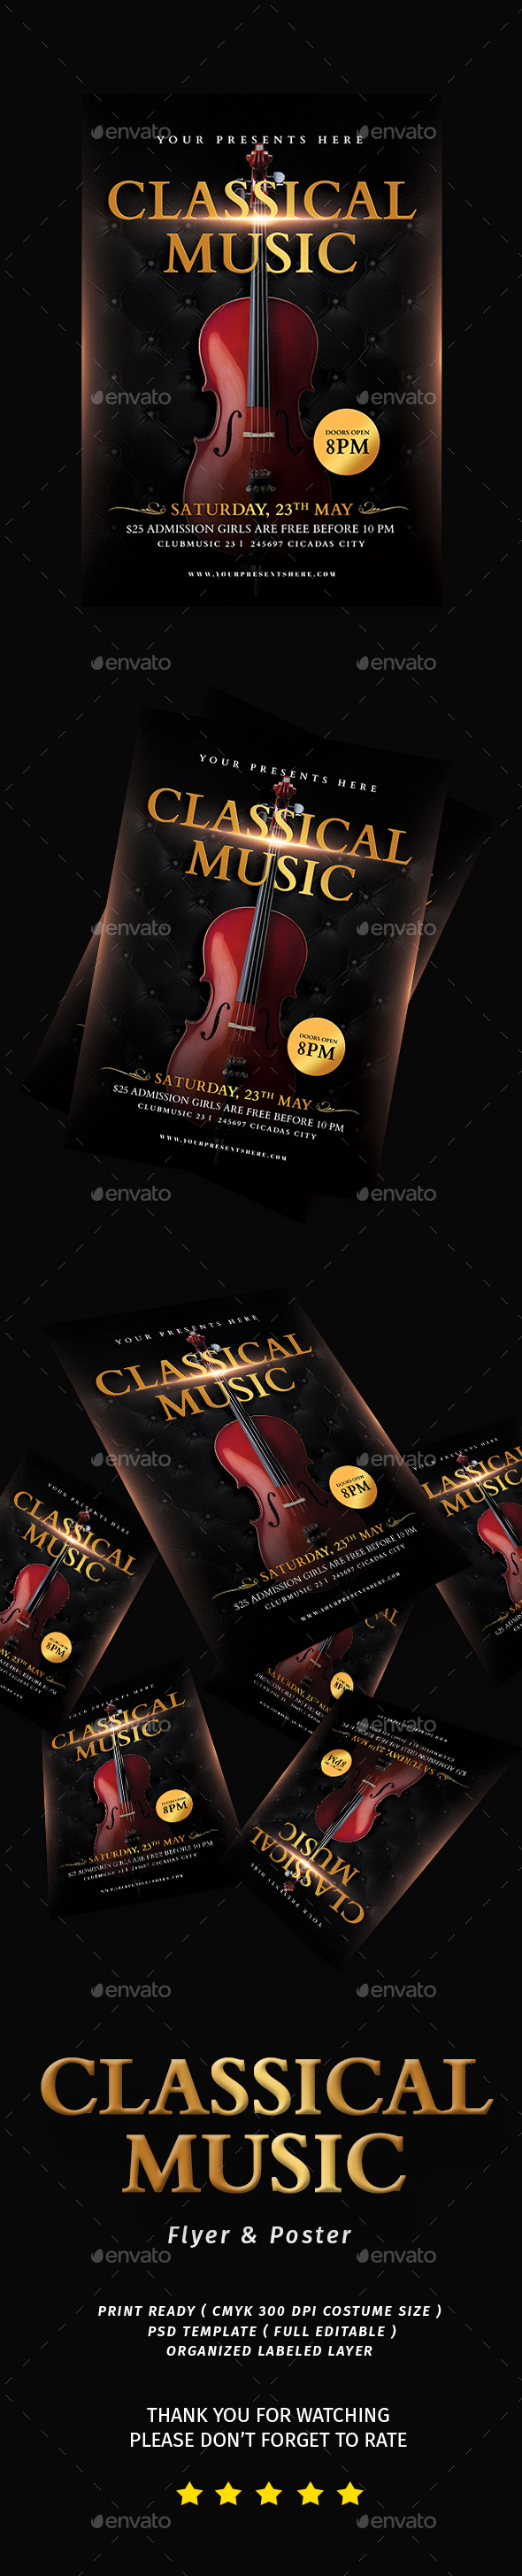 Classical Music Flyer - Flyers Print Templates